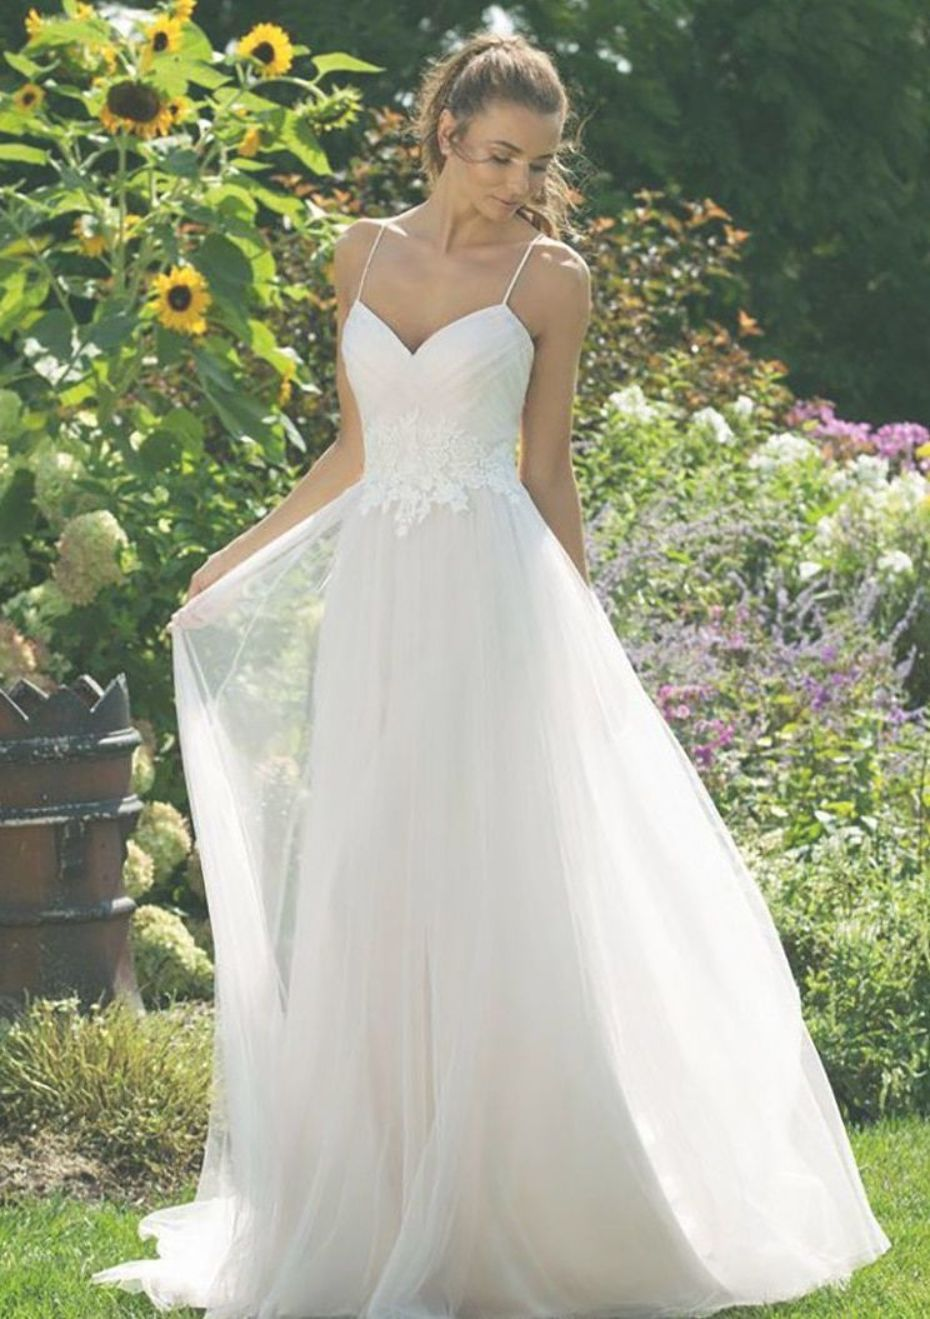 Gorgeous Cheap Informal Wedding Dresses Under 100 Wedding Dresses Informal Wedding Dresses Inexpensive Wedding Dresses